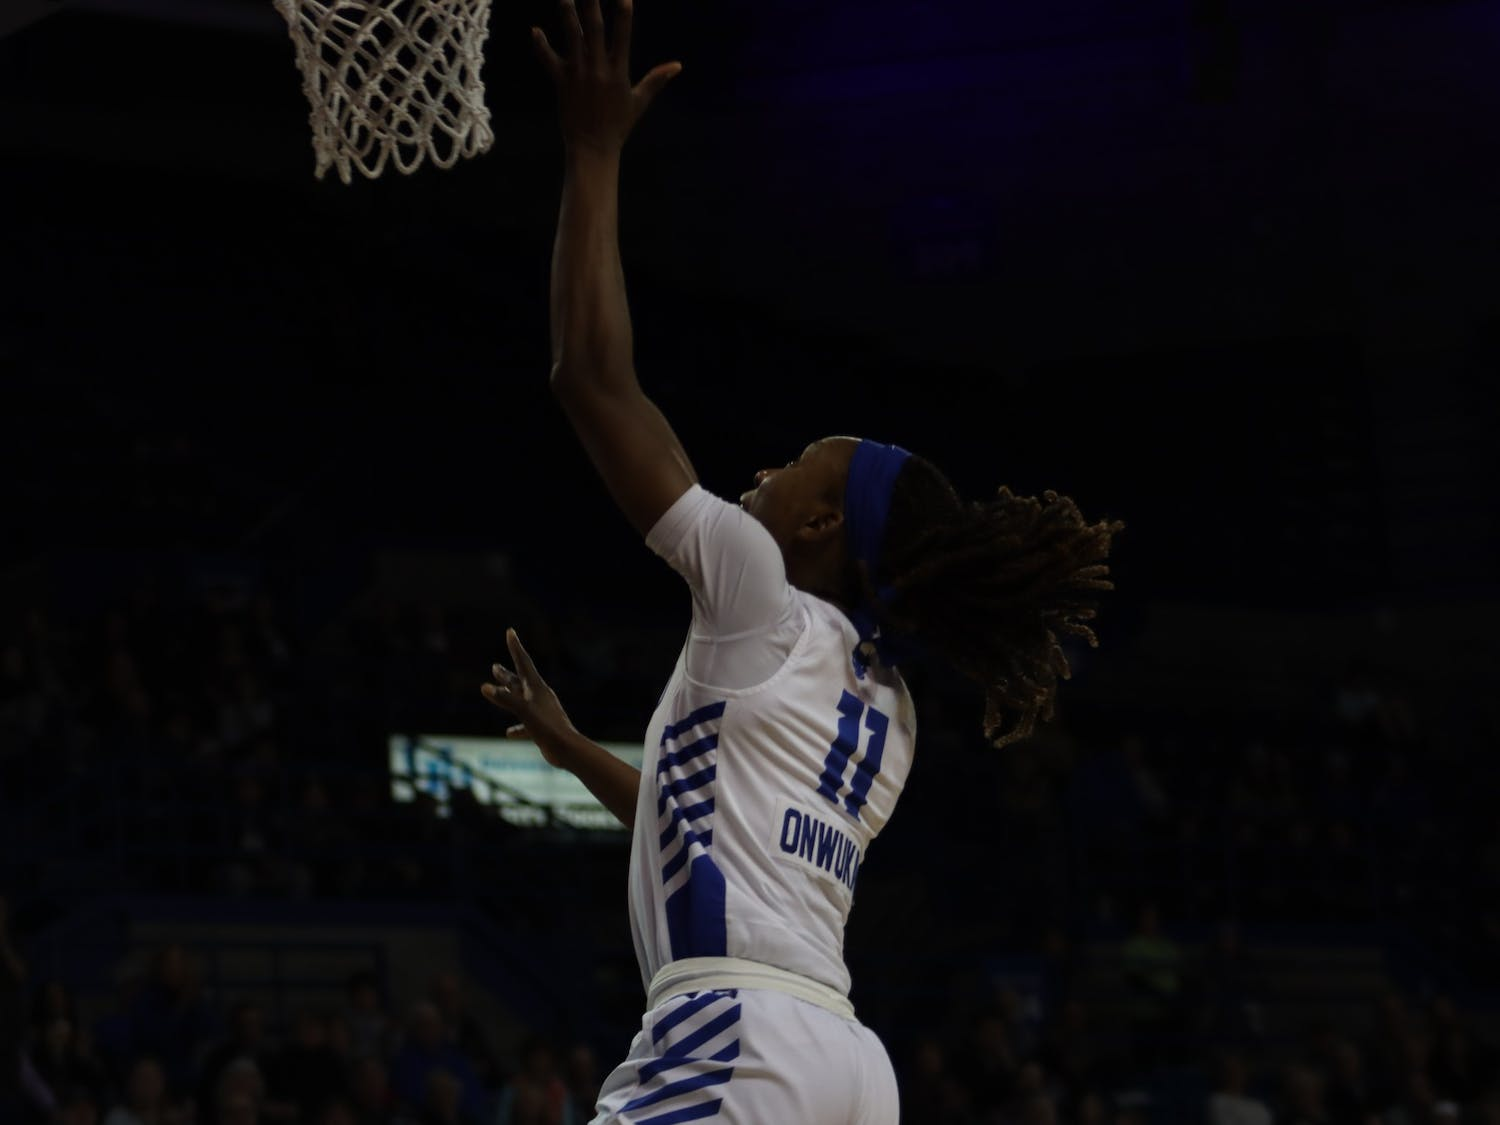 Senior guard Theresa Onwuka goes for a successful layup at Wednesday's game against Central Michigan after a successful steal.